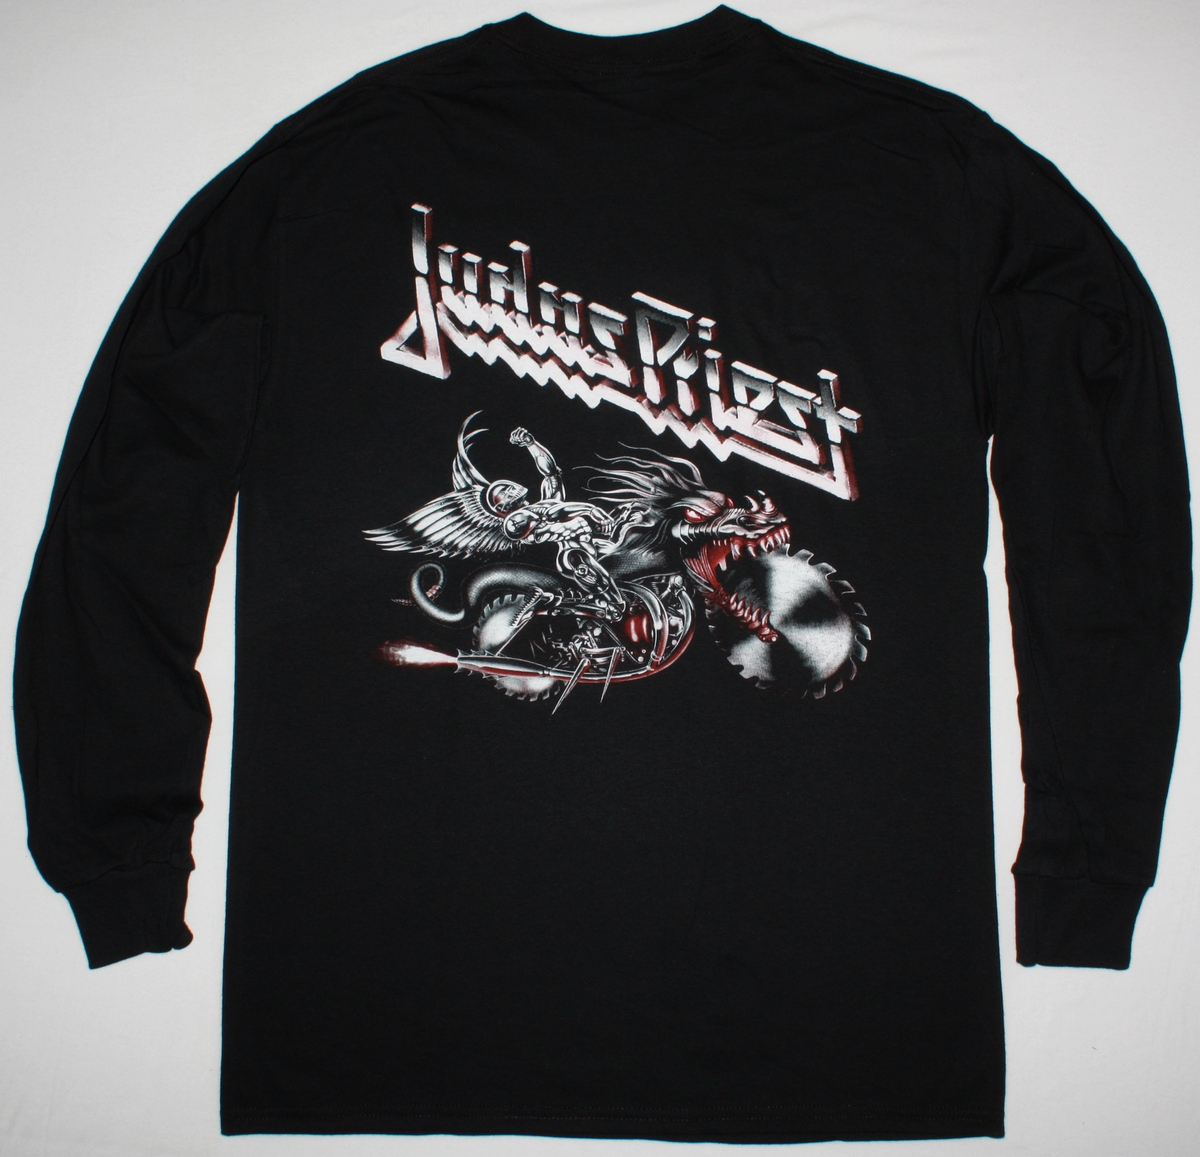 JUDAS PRIEST PAINKILLER'90 NEW BLACK LONG SLEEVE T-SHIRT